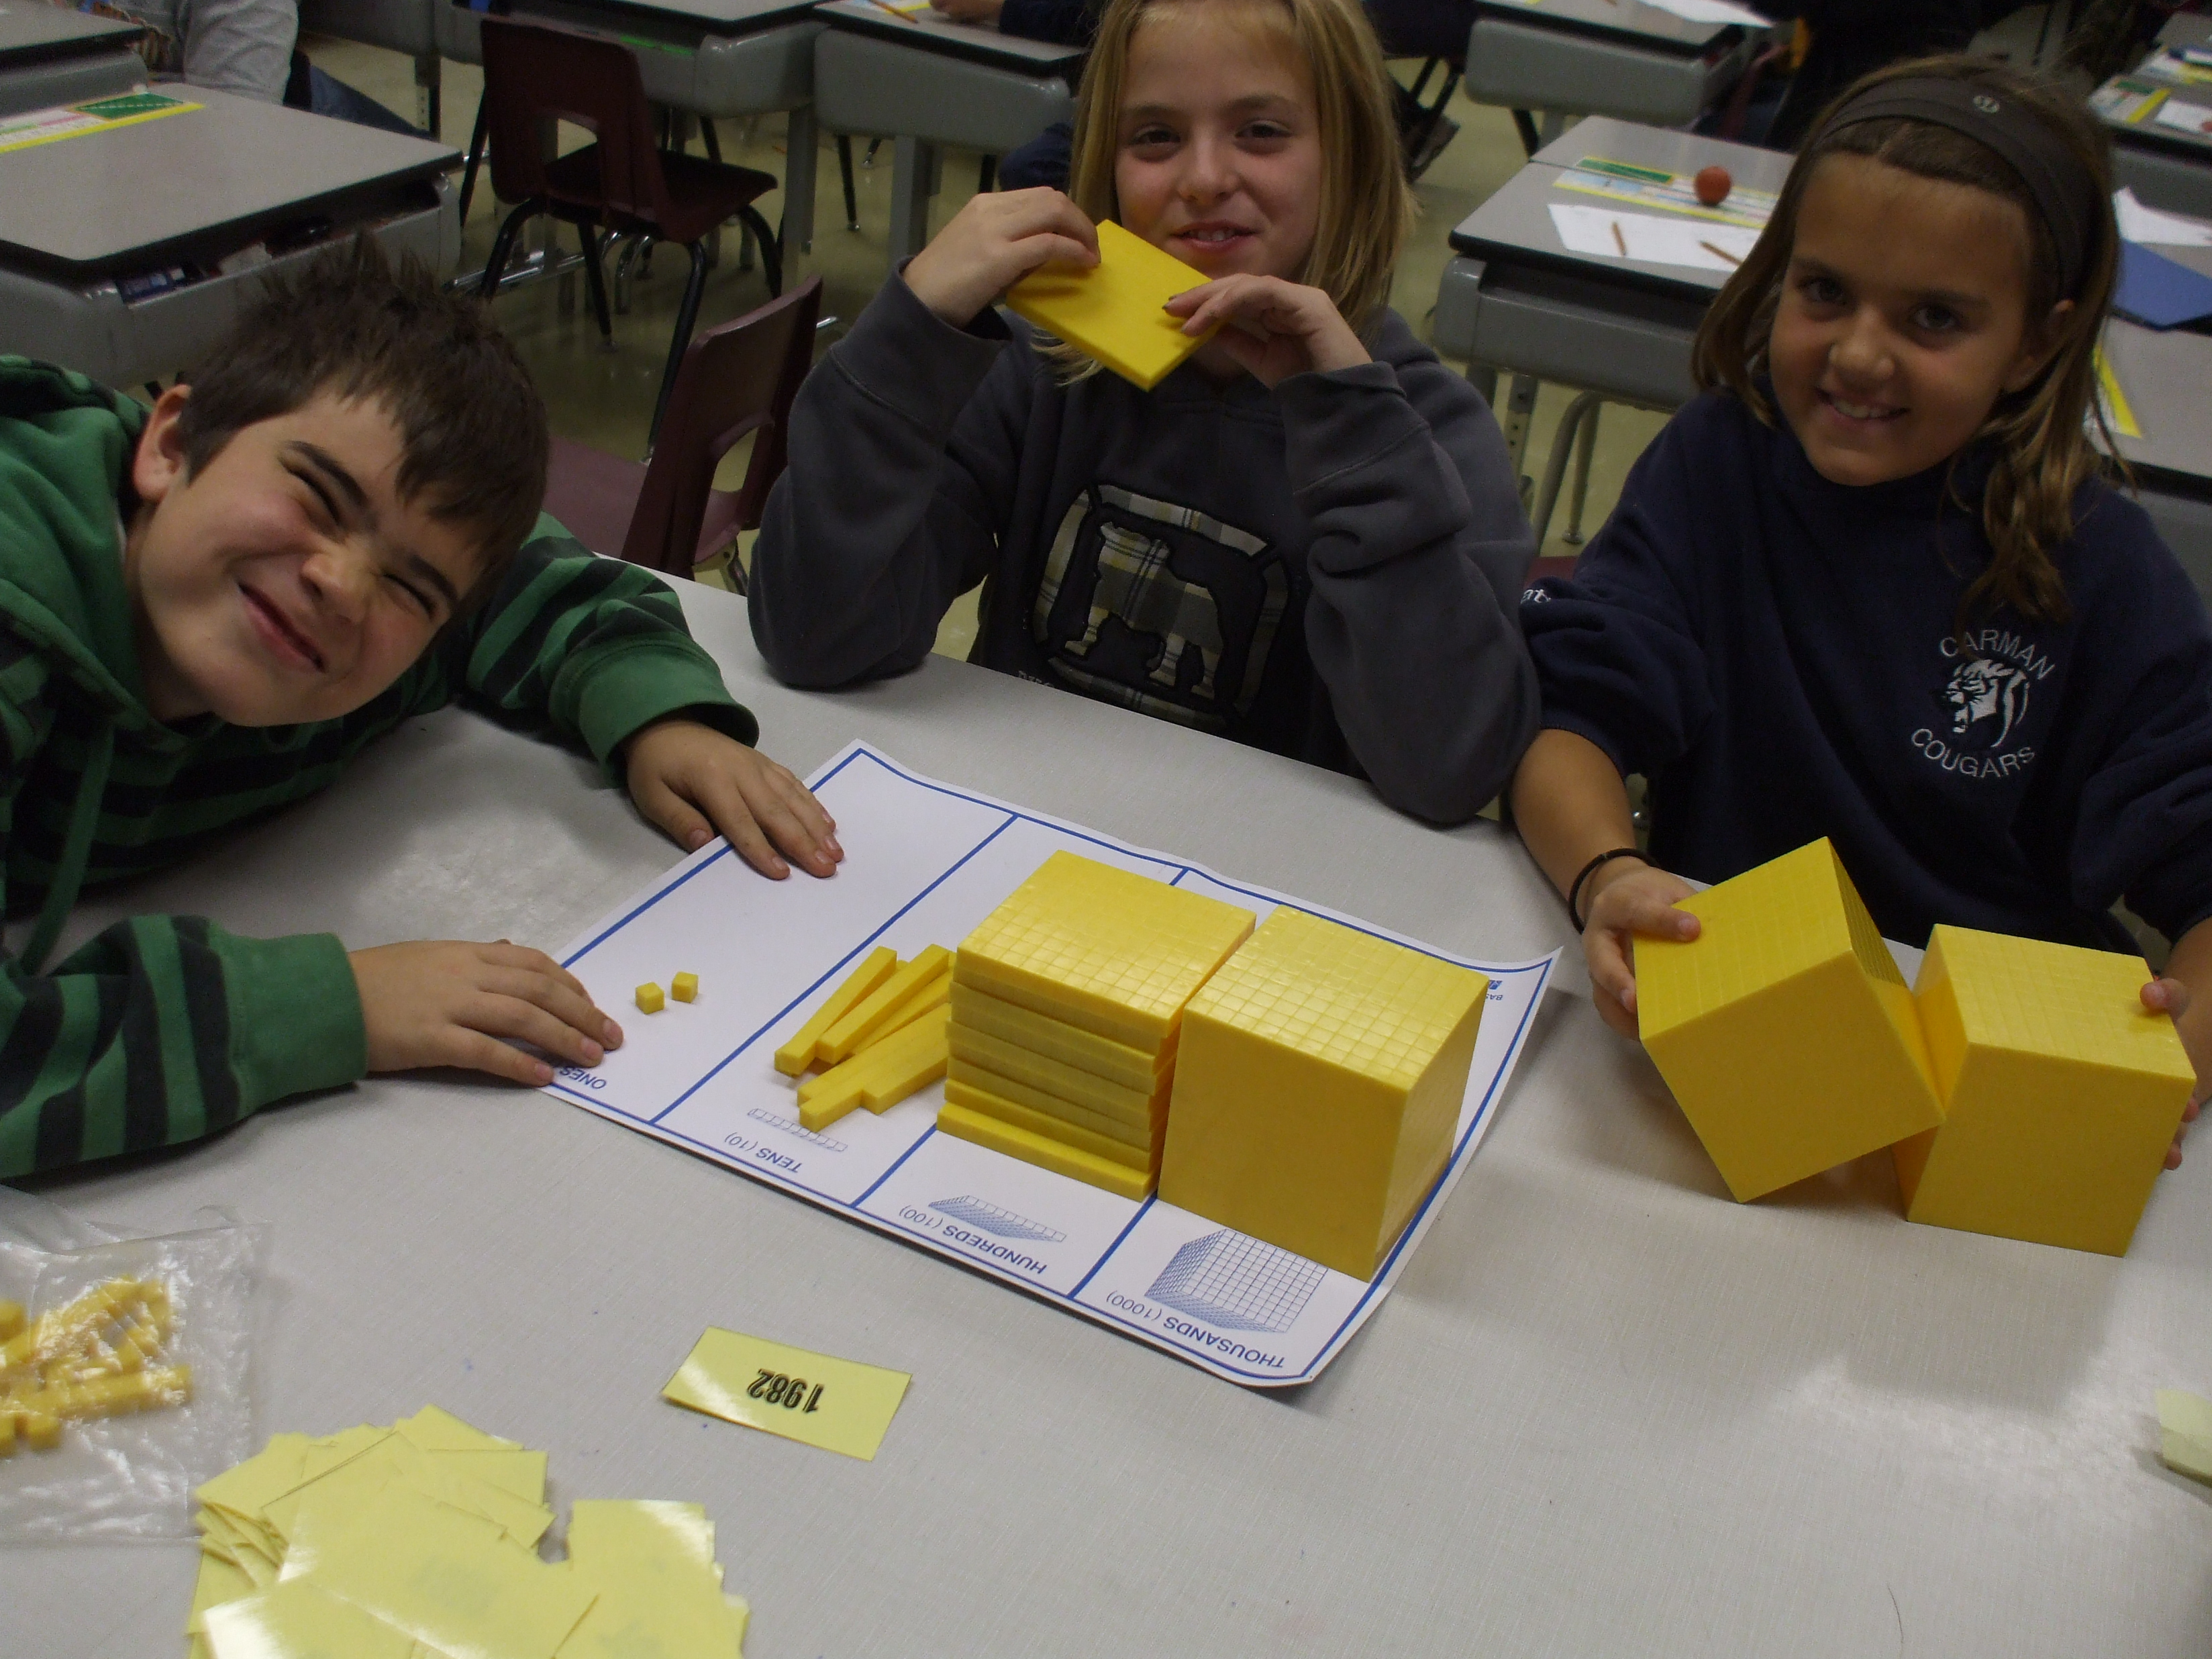 Carman Elementary School 4k Math